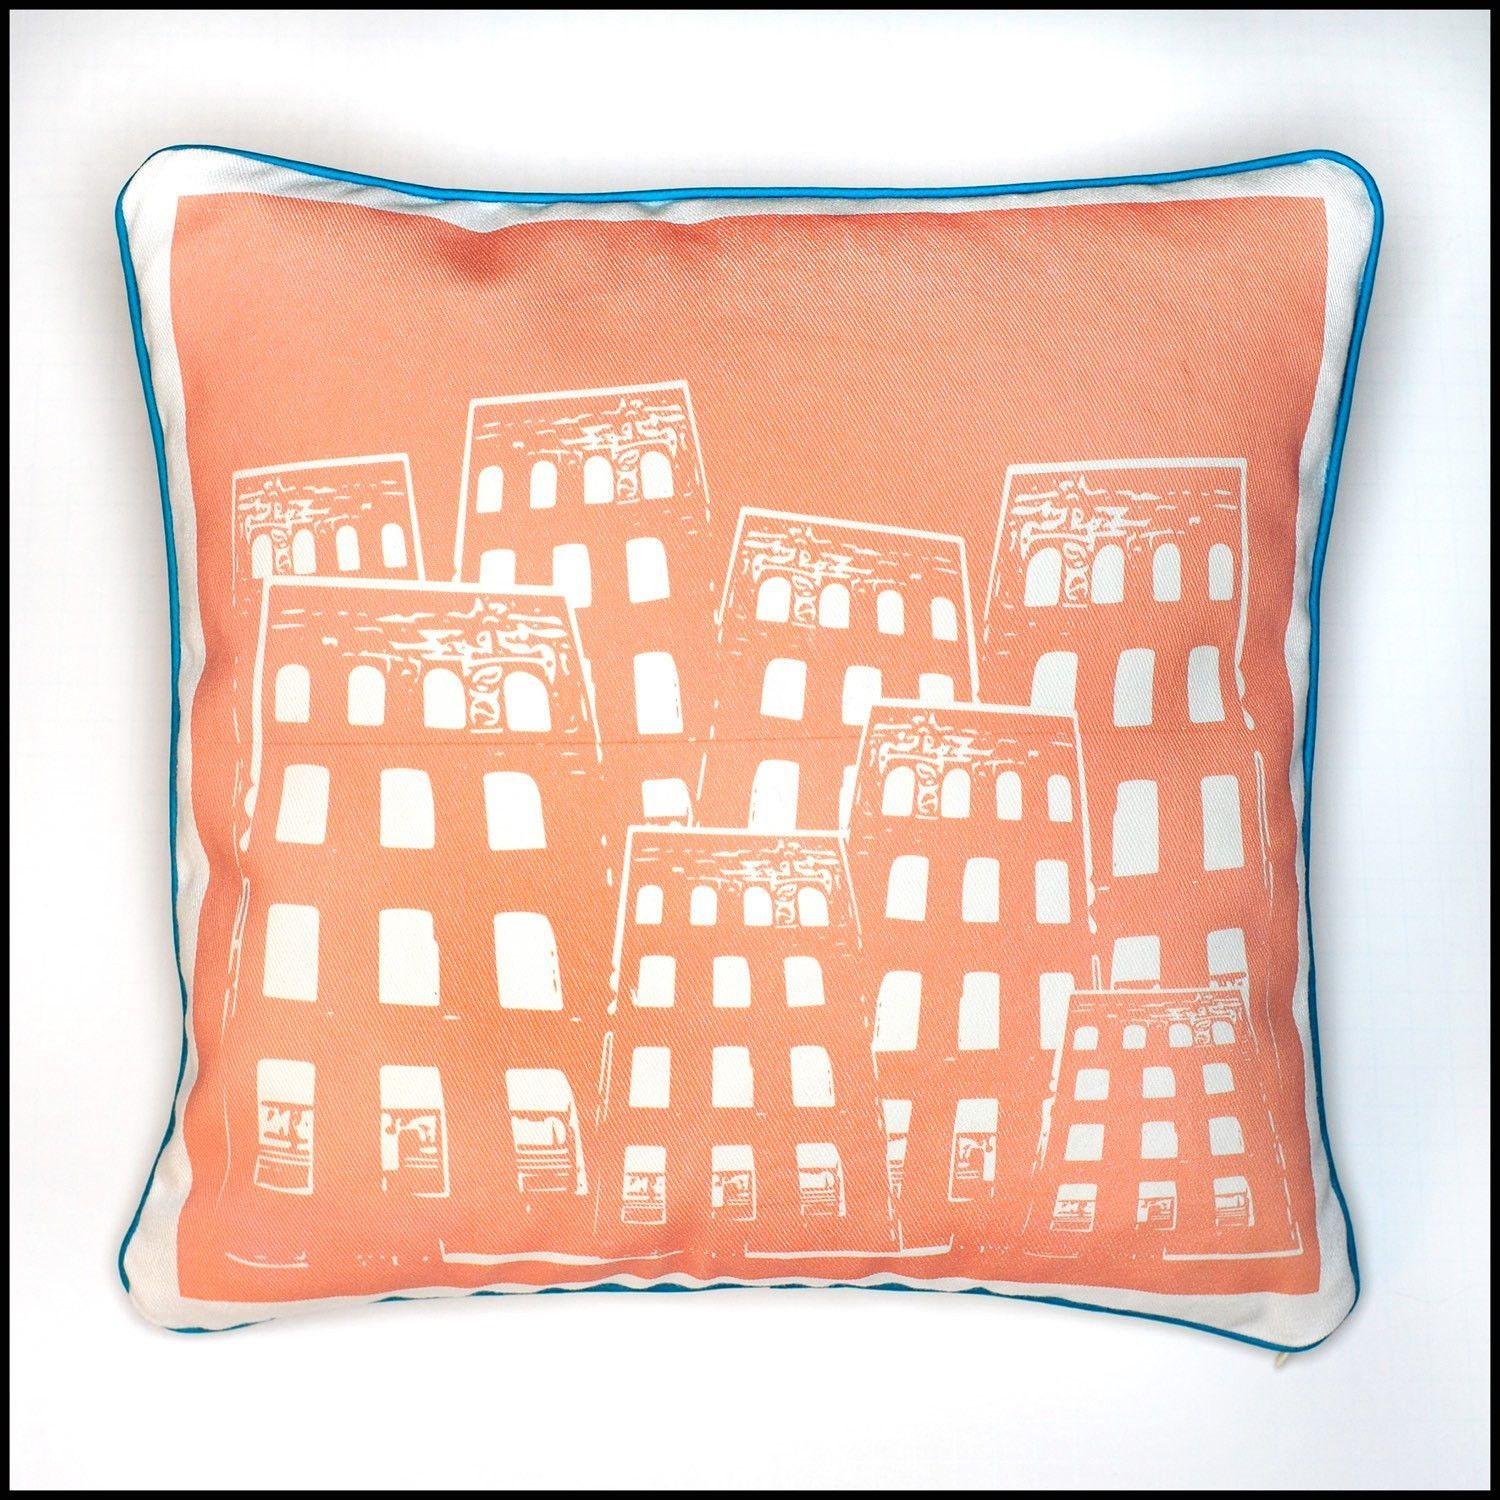 orange accesories sale throwllows peach magnificent decorative white angeles project throws south ideas decorating on and tan new accent throw sofa max pillows decor rustic colorful for los black target accents